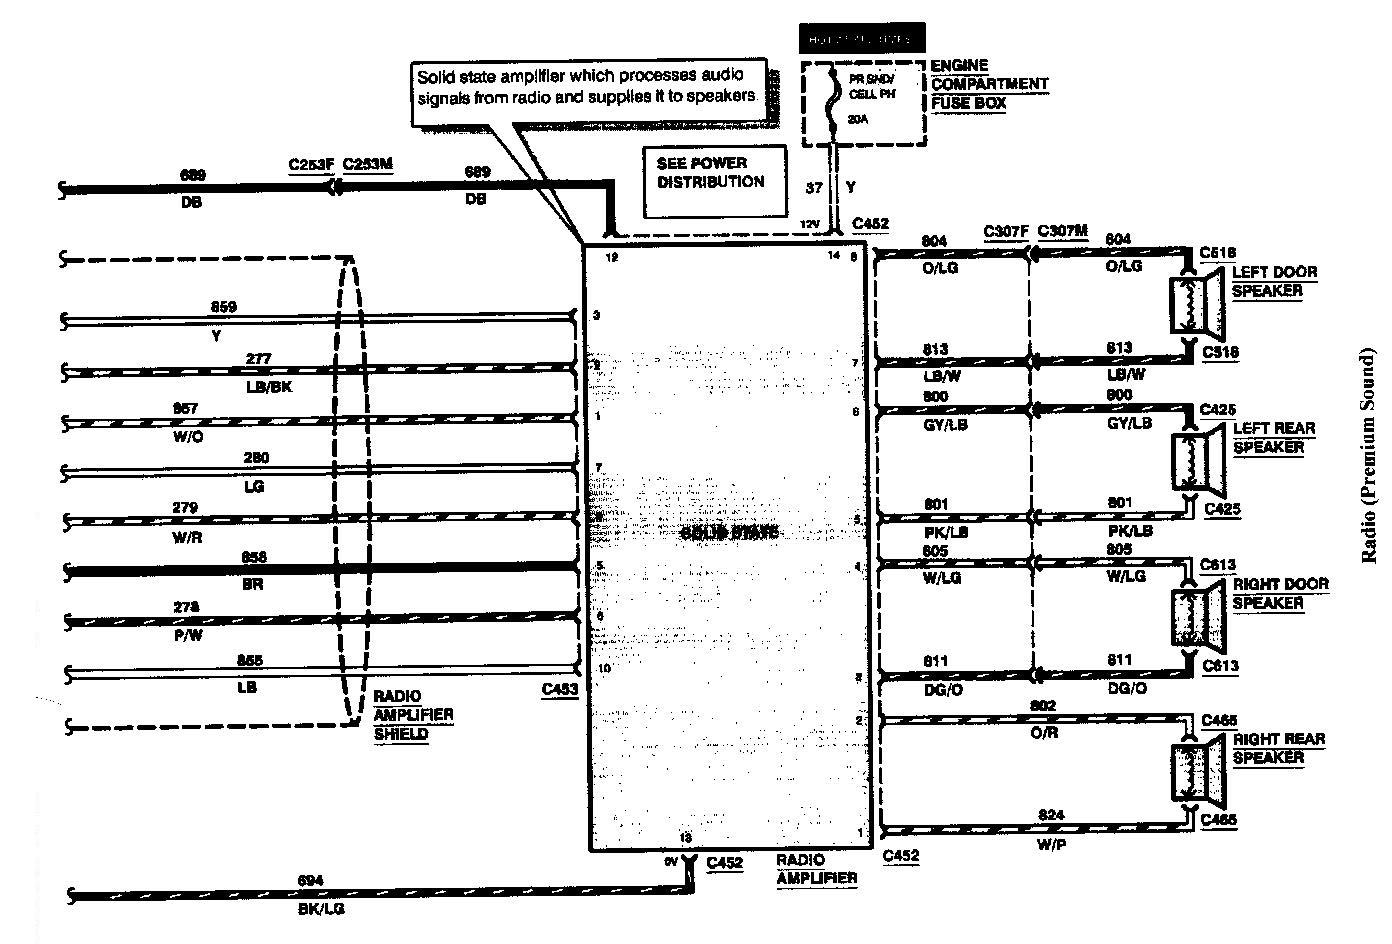 95Mark8 Premium Sound Wiring2?resize=840%2C570 diagrams lincoln wiring diagrams online the lincoln mark vii 1996 lincoln town car wiring diagram at reclaimingppi.co